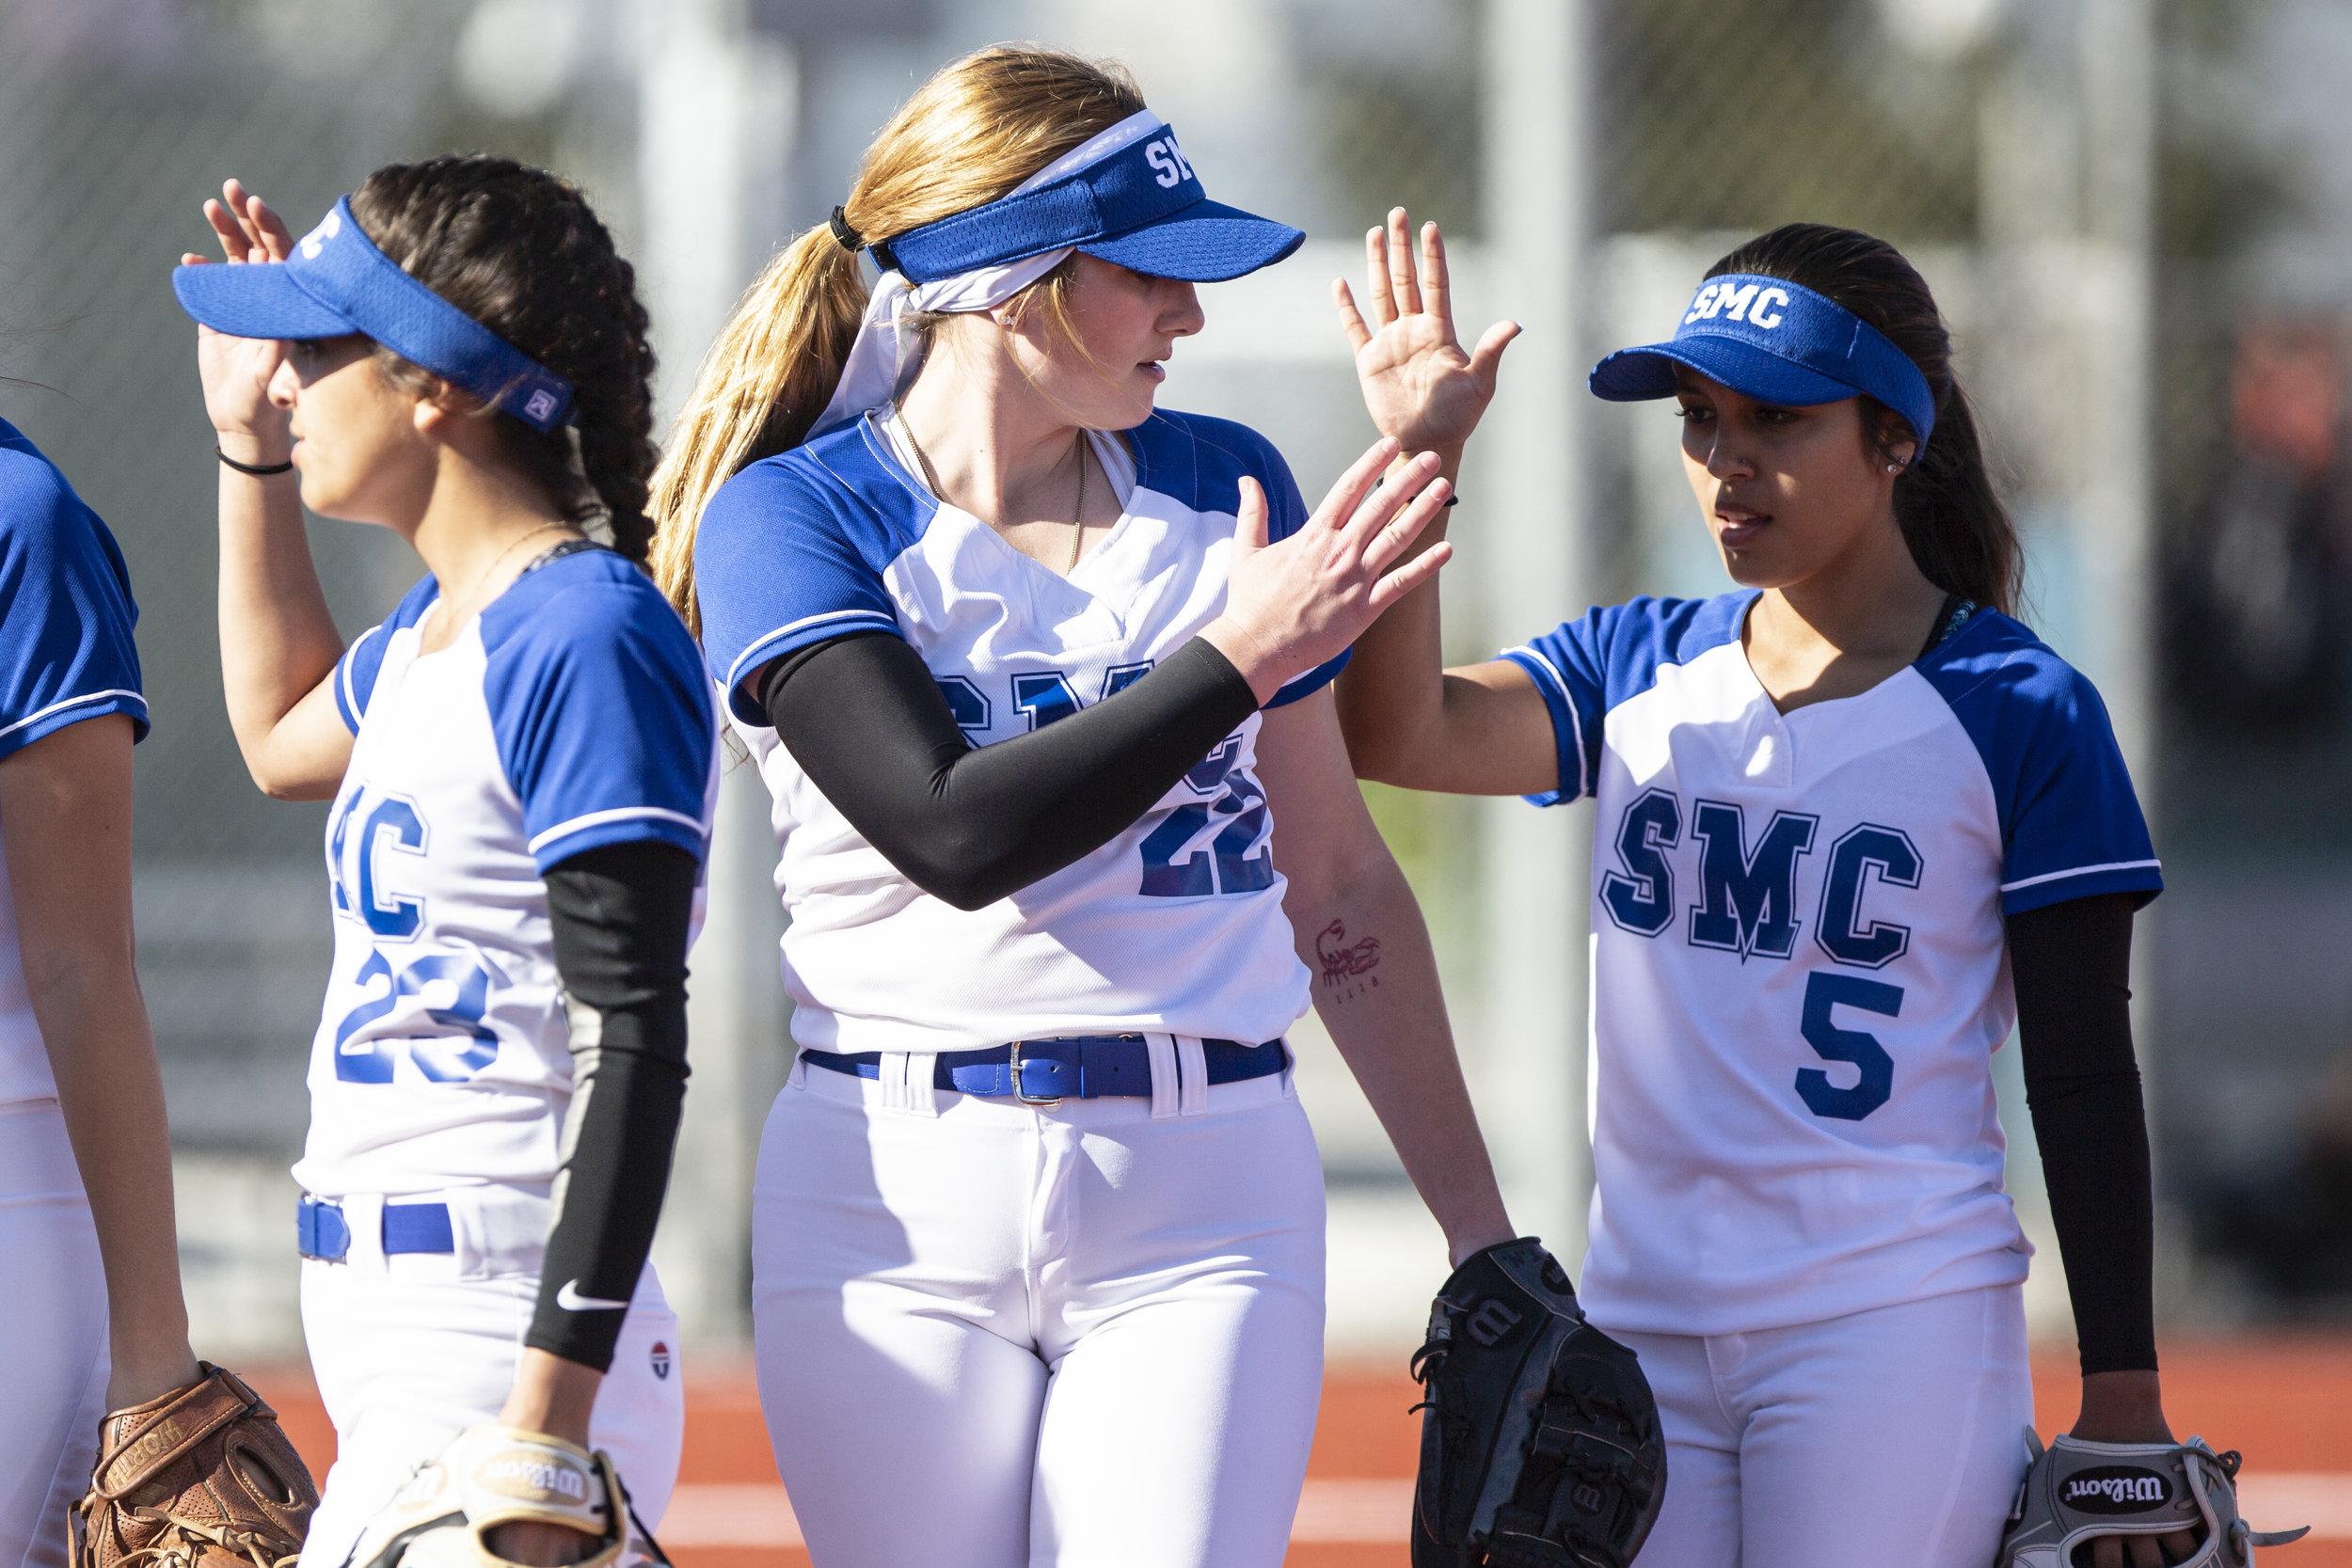 Ireland Miessau (middle) Emma Soto(right) and Taylor Liebesman (left), from Santa Monica College softball team playing at home vs Moorpark team, Thursday, March 7, 2019 in Santa Monica, Calif.